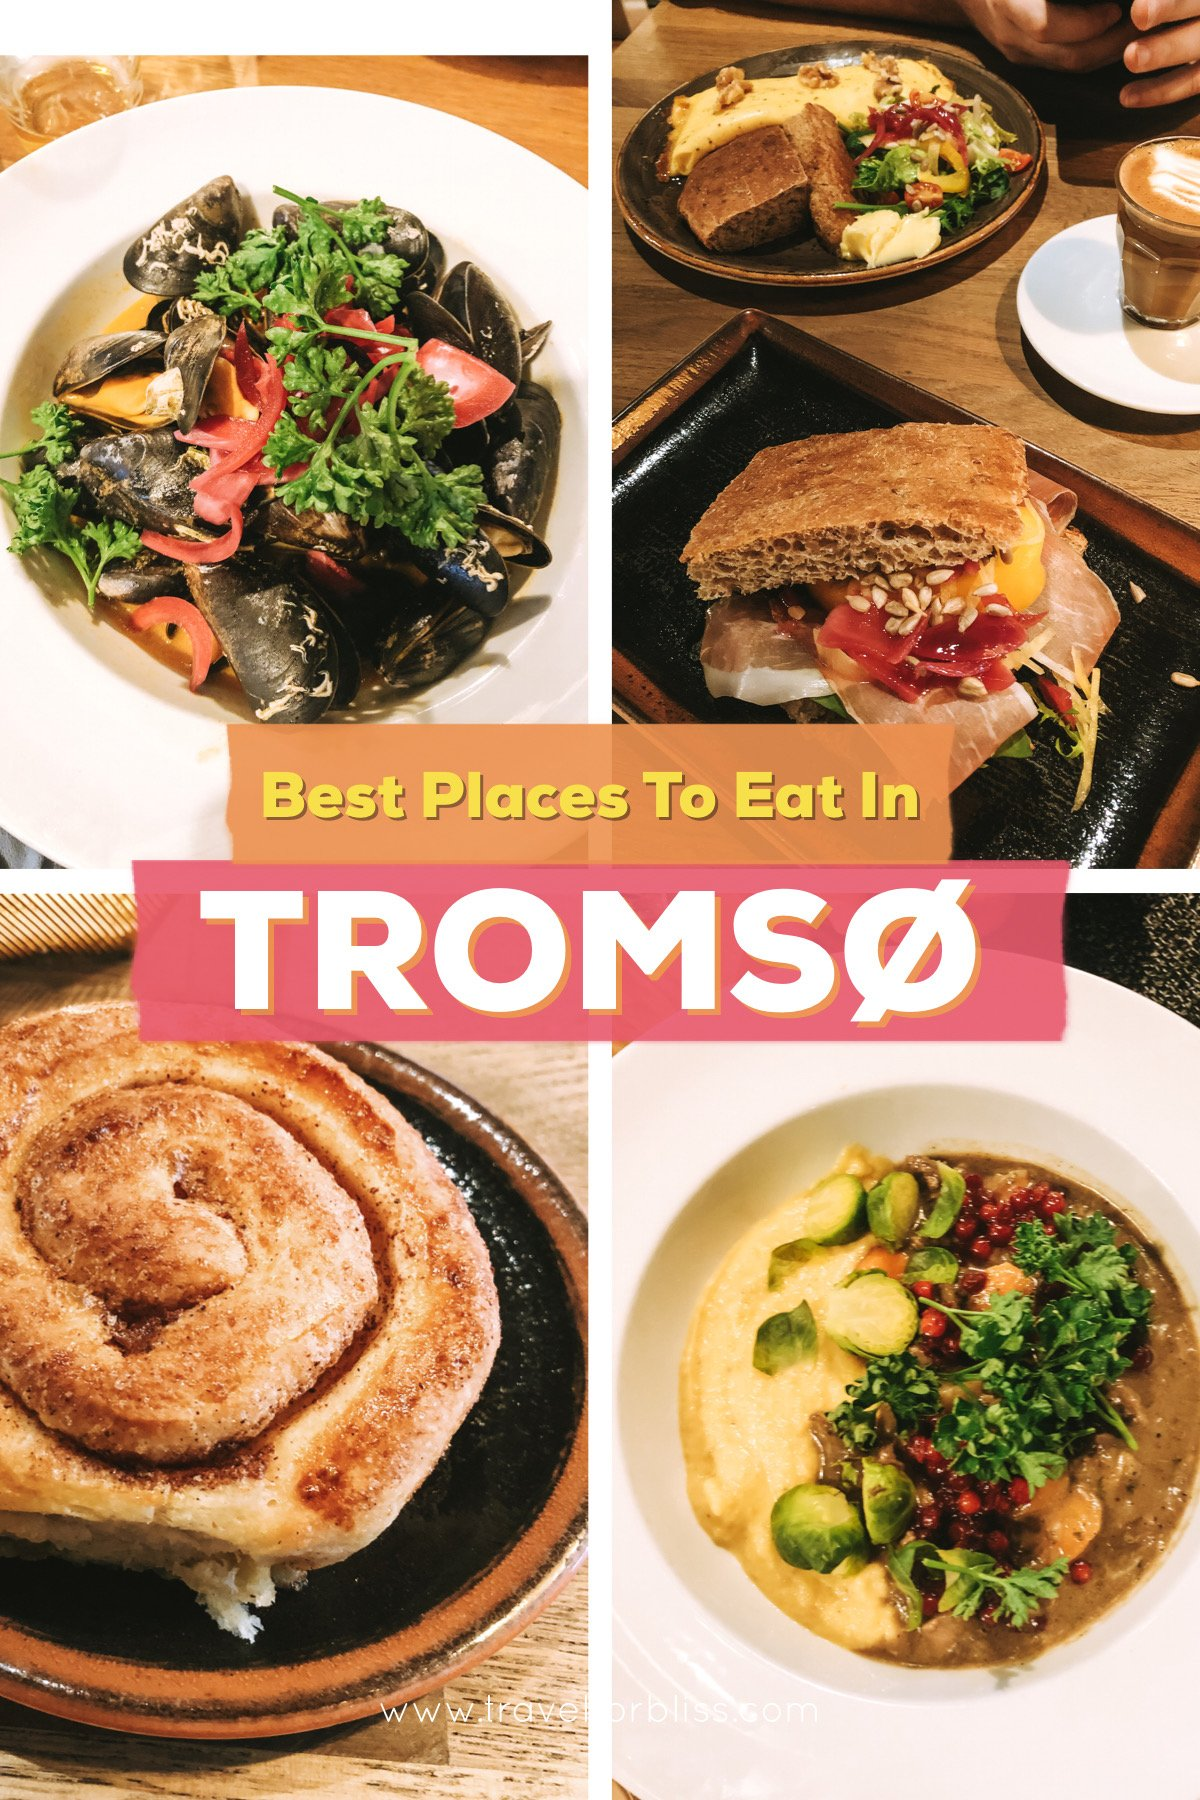 The Best places to eat in tromso